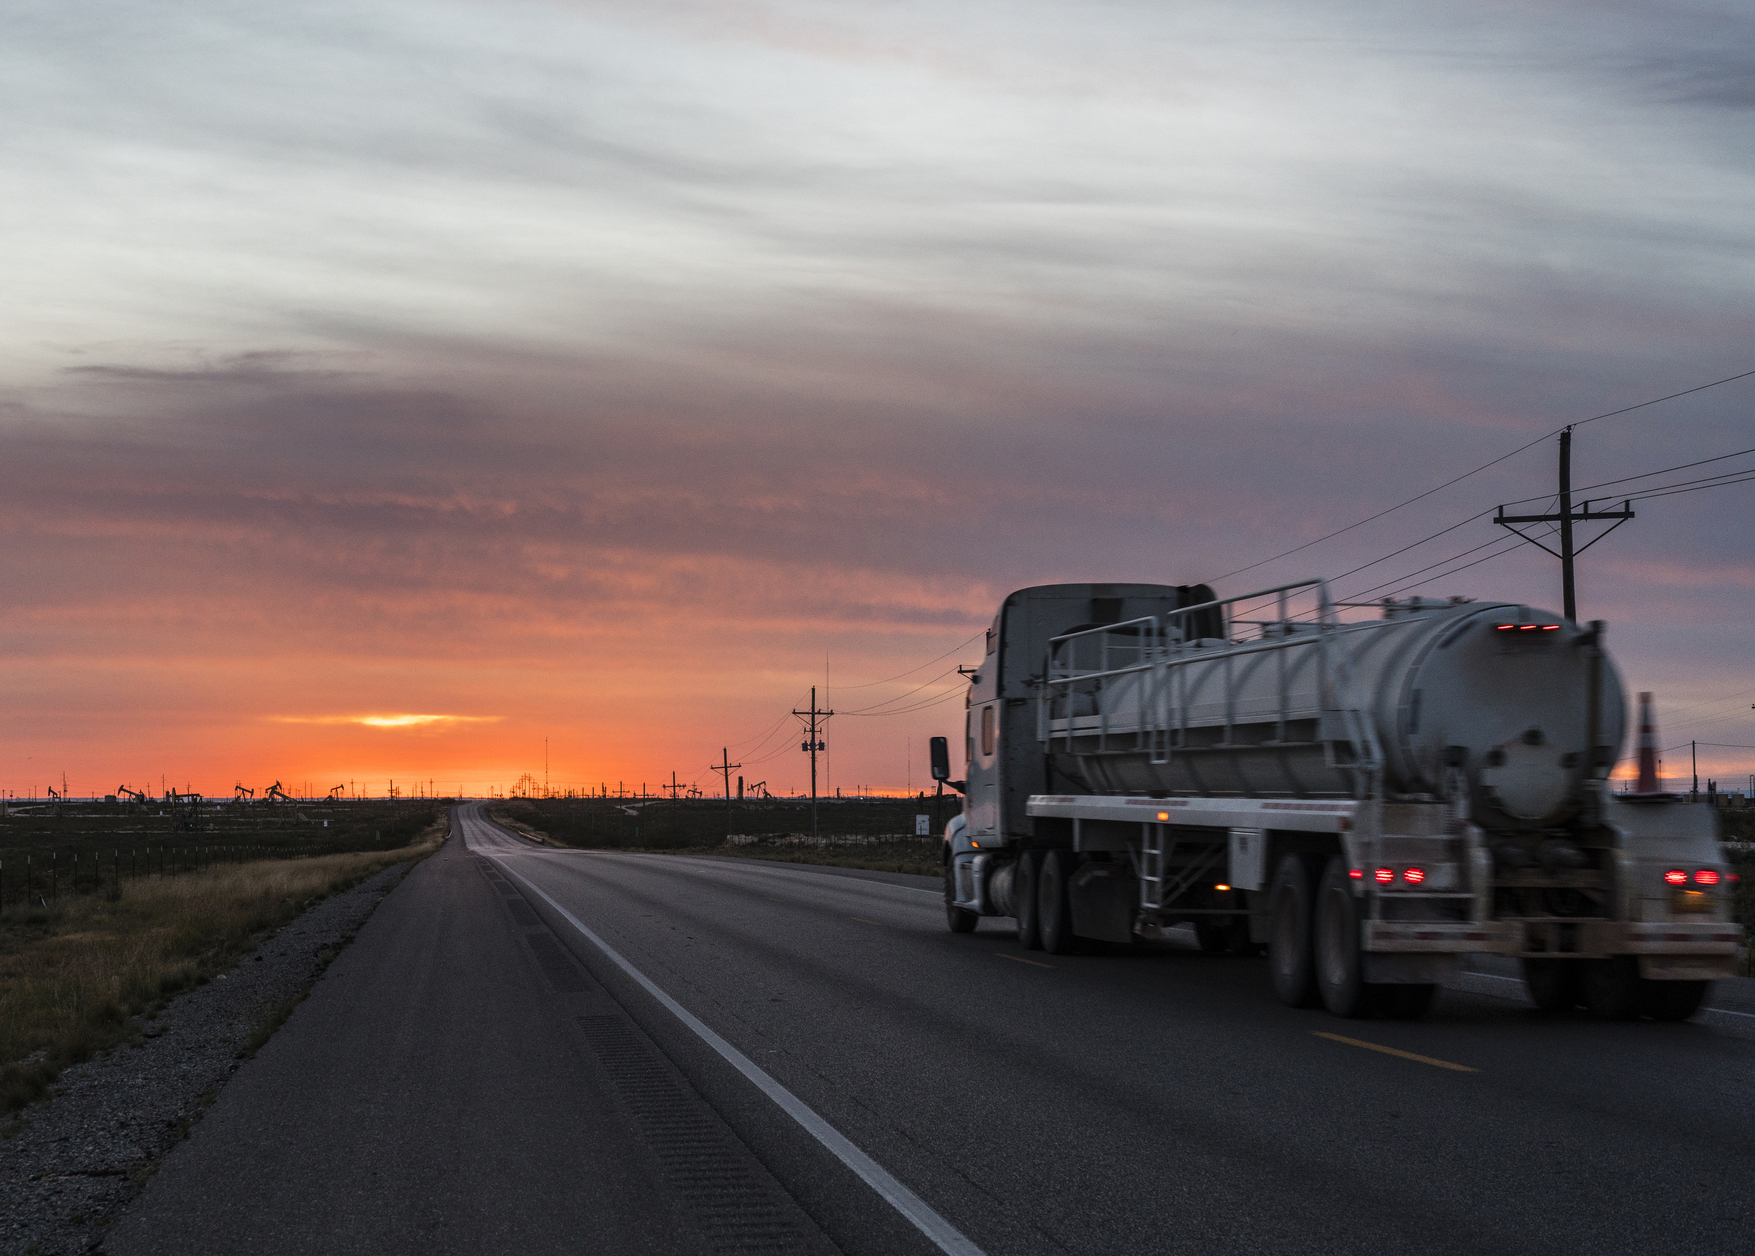 Dangerous oil field roads highlight the need for infrastructure improvements